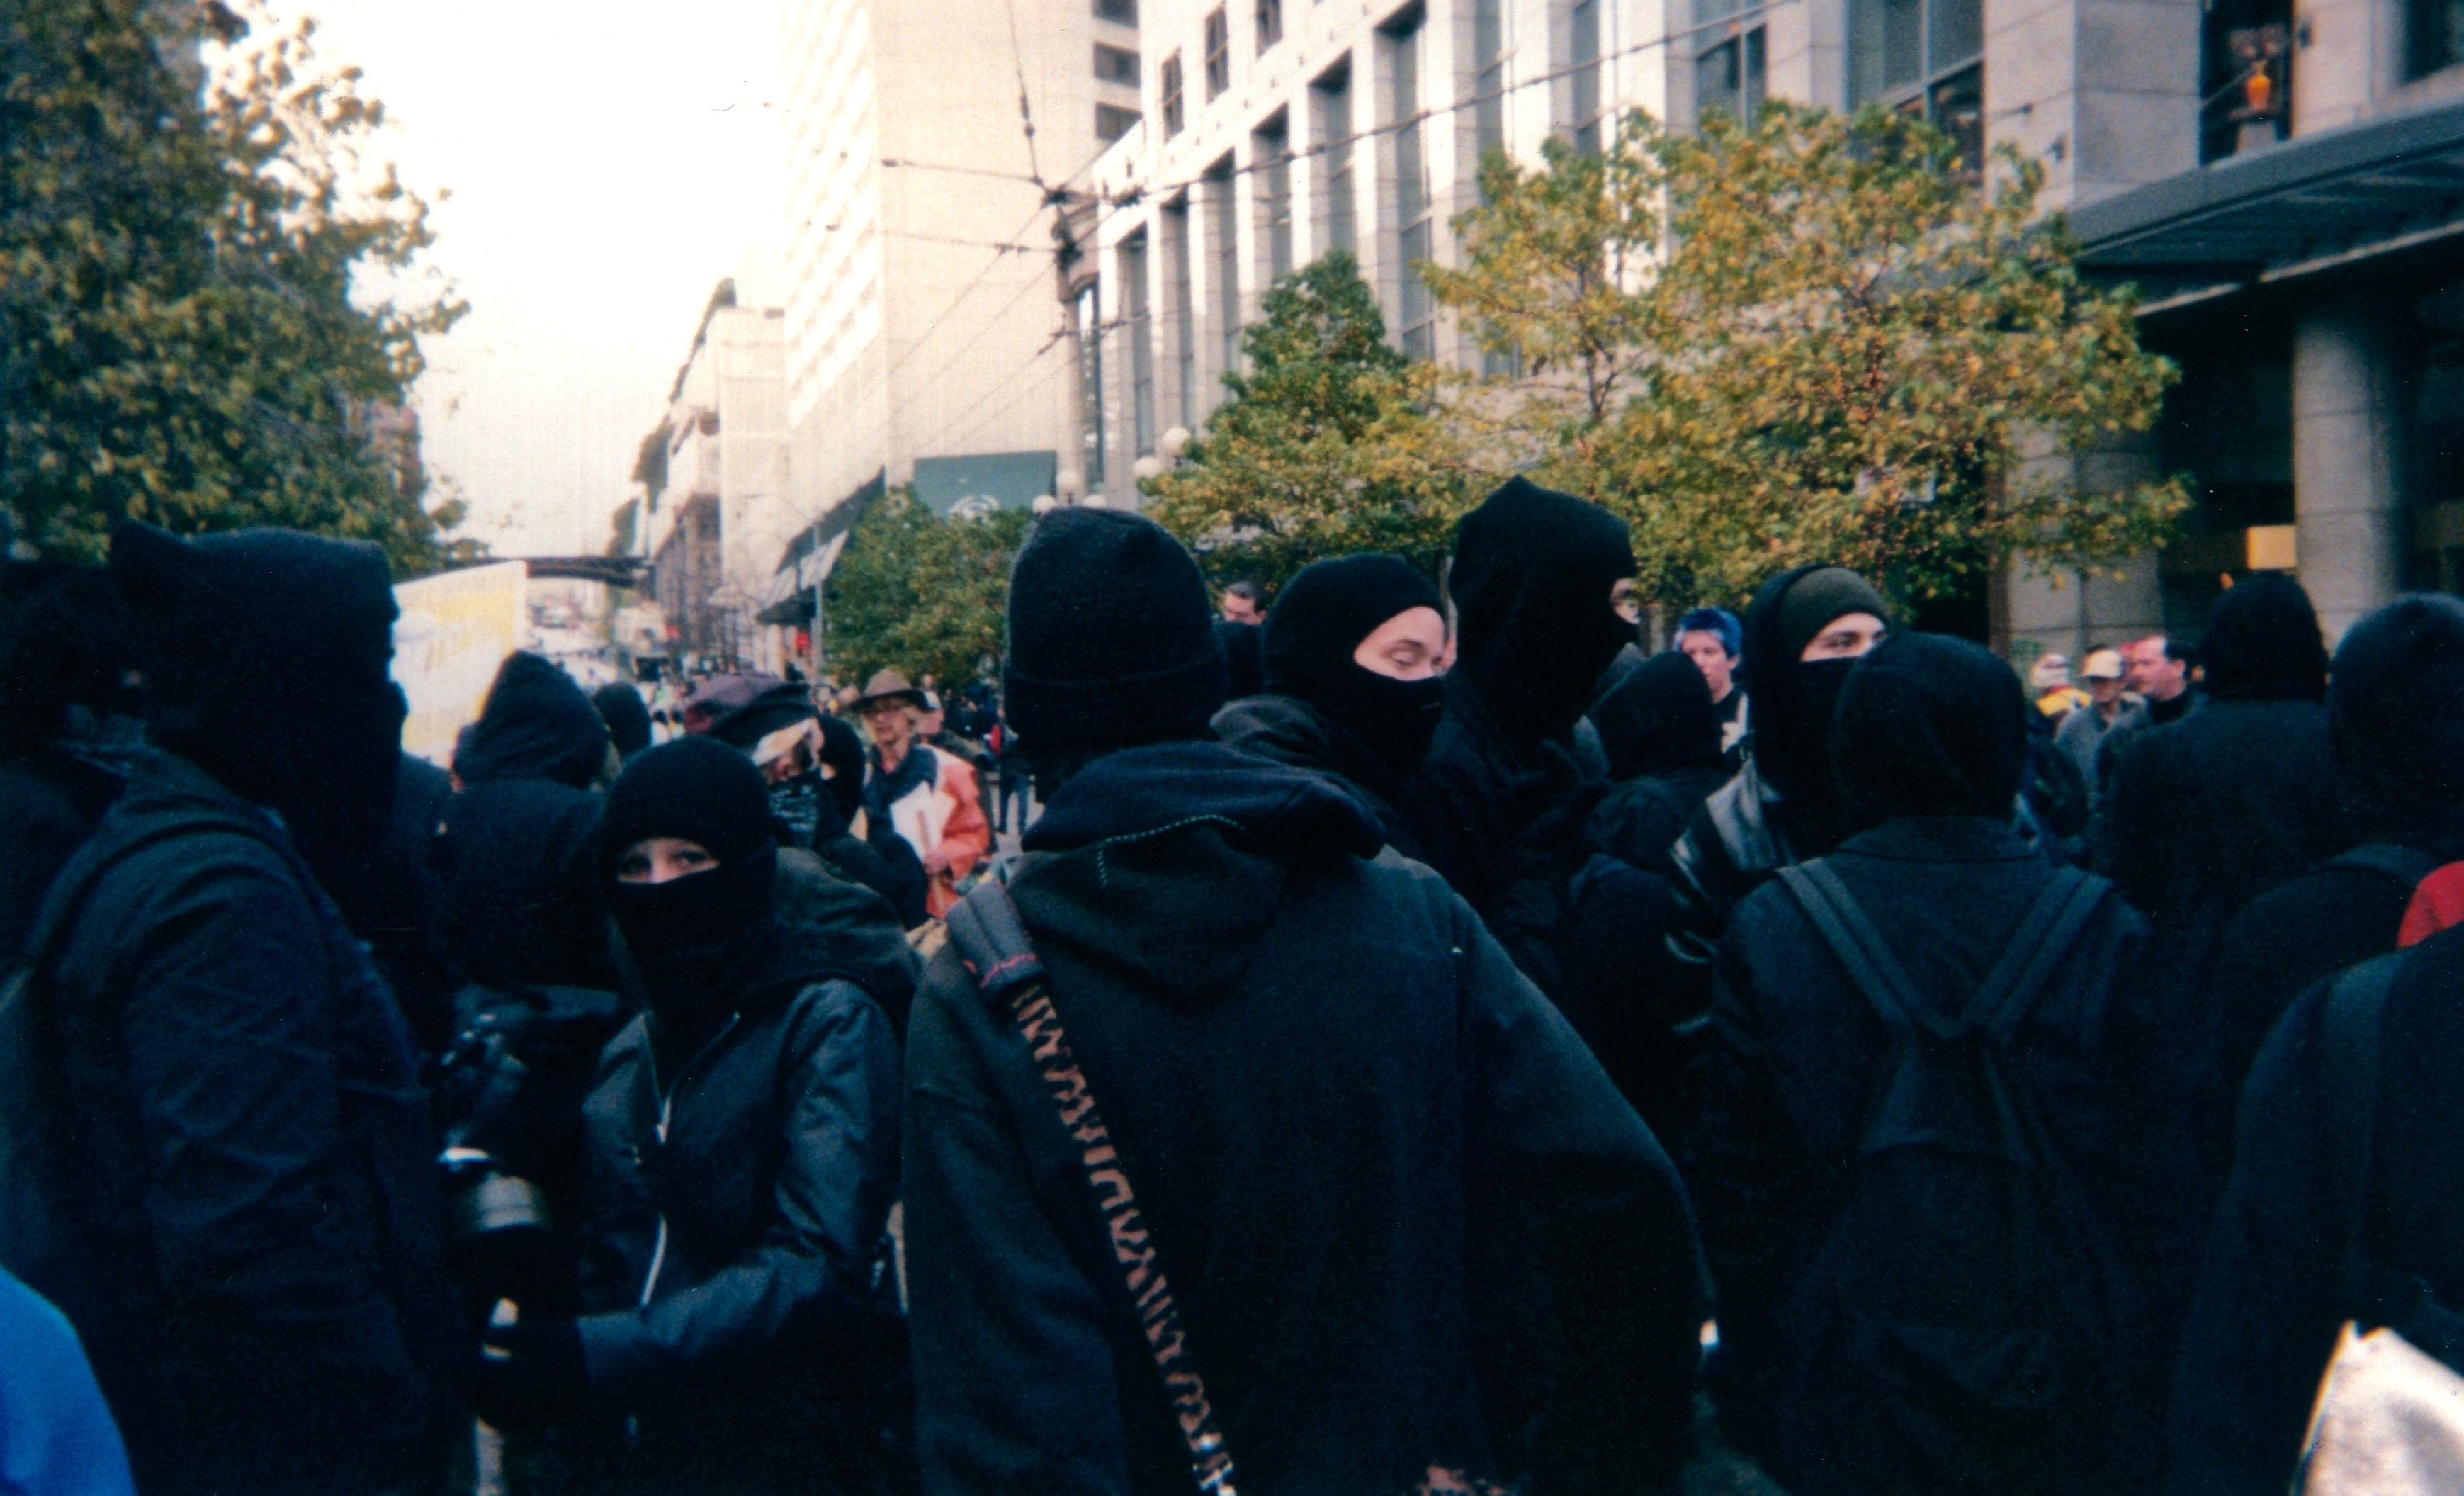 Black Bloc anarchists at the 1999 protest against the World Trade Organization in Seattle.